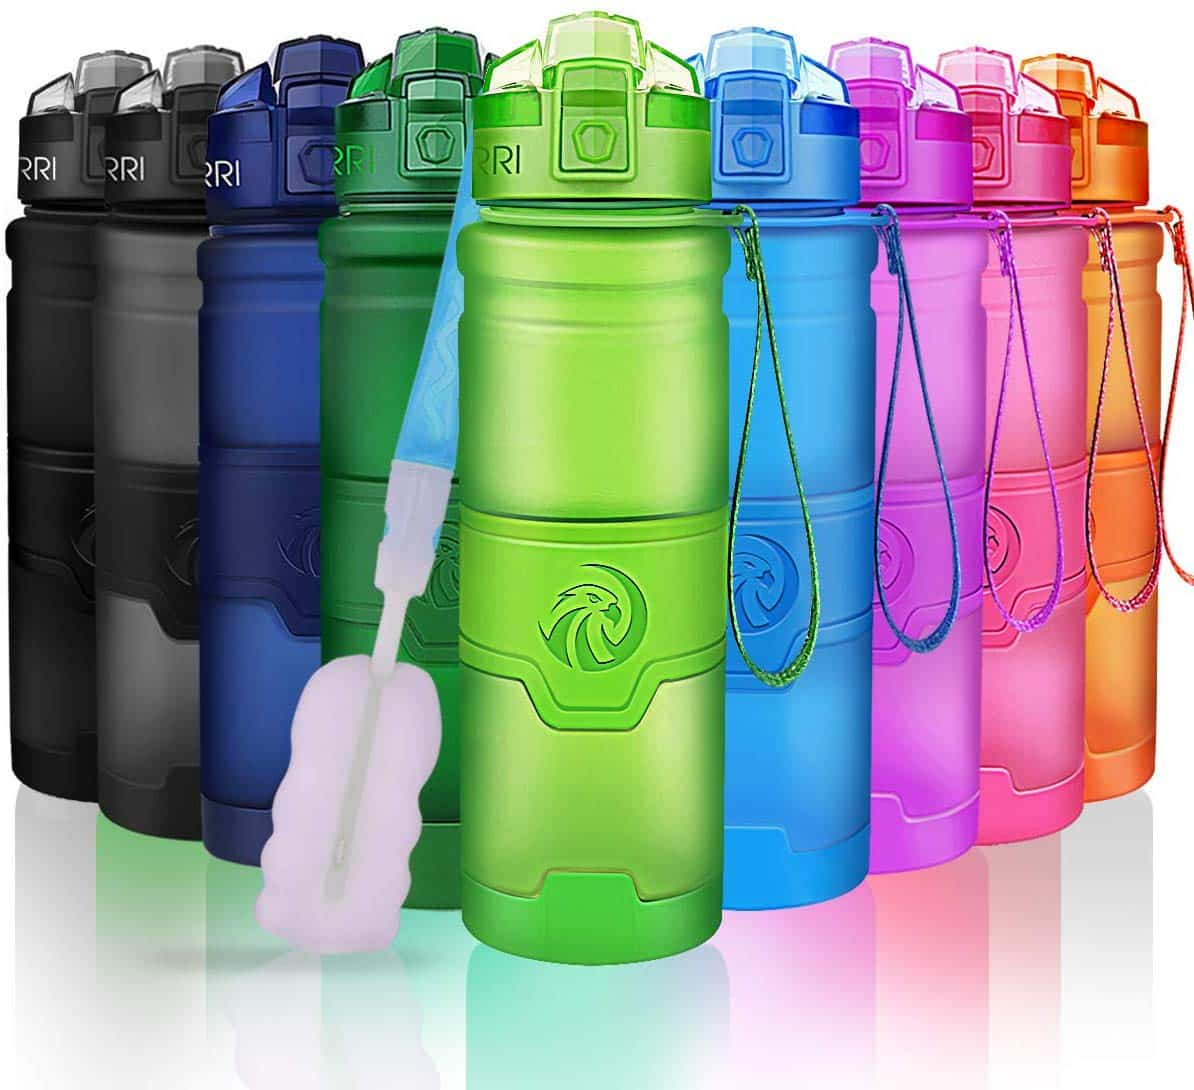 500ml Sports Kids Water Bottle,17oz BPA Free Leak Proof Tritan Wide Mouth Bottle with Flip Lid for Outdoors,Camping,Gym,Yoga- Kids//Adults